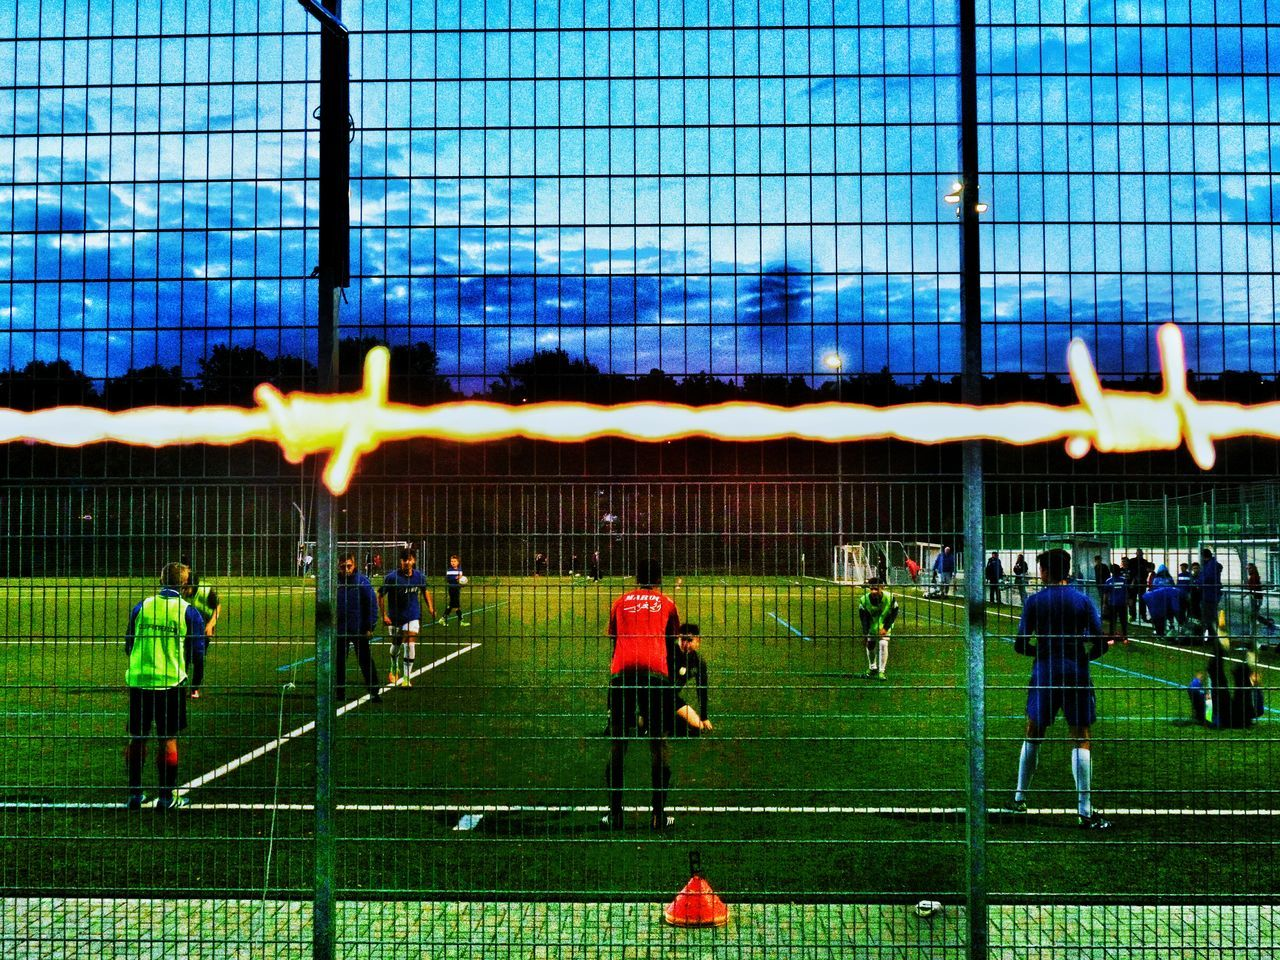 Security Behind Barbed Wire Sports Bring People Together Young People Different Nationalities In One Team Soccer Training Fussball Evening Sky Real People Large Group Of People SportSoccer Player Sports Regional Youth Soccer Team Frankfurt Am Main Germany🇩🇪 Finding New Frontiers